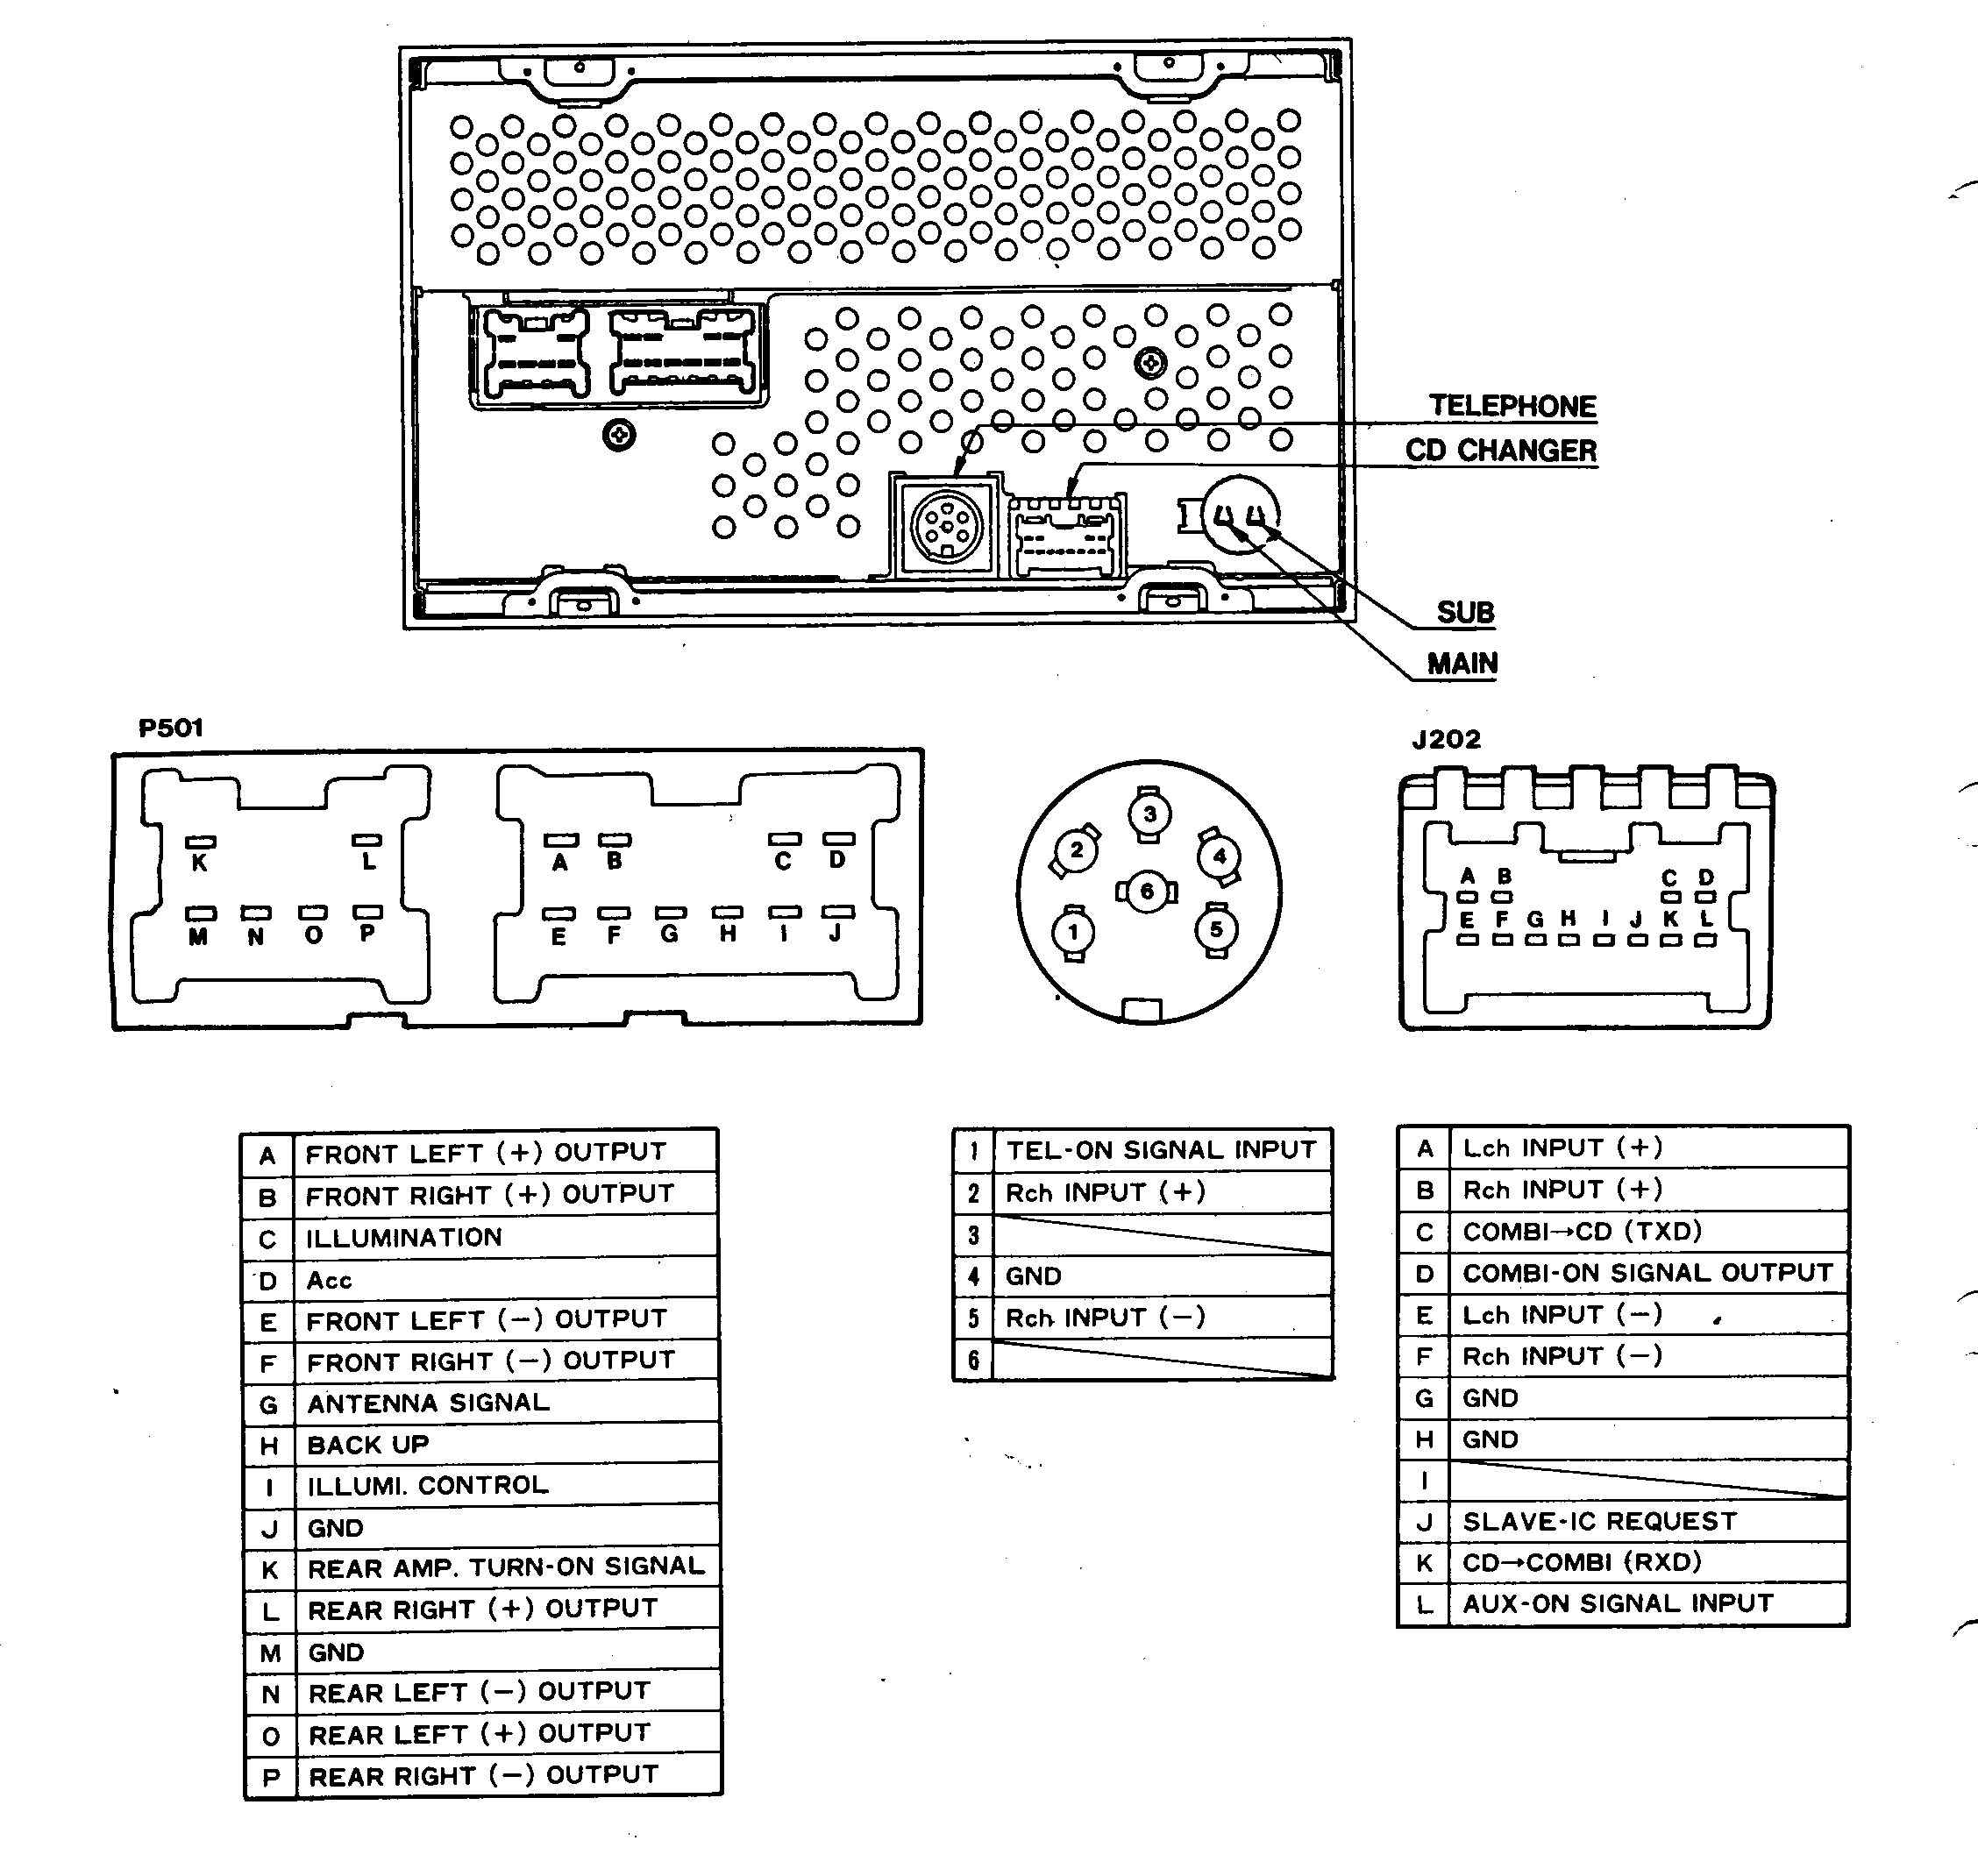 Civic Del Sol Fuse Panel Printable Copies Fuse Diagrams Here 1966666 in addition 2006 Ford Taurus Fuse Identification furthermore 1999 Nissan Patrol Stereo Wiring Diagram furthermore 383sh Ecm Fuse Located 2001 Tahoe further Watch. on 2009 cadillac cts fuse diagram